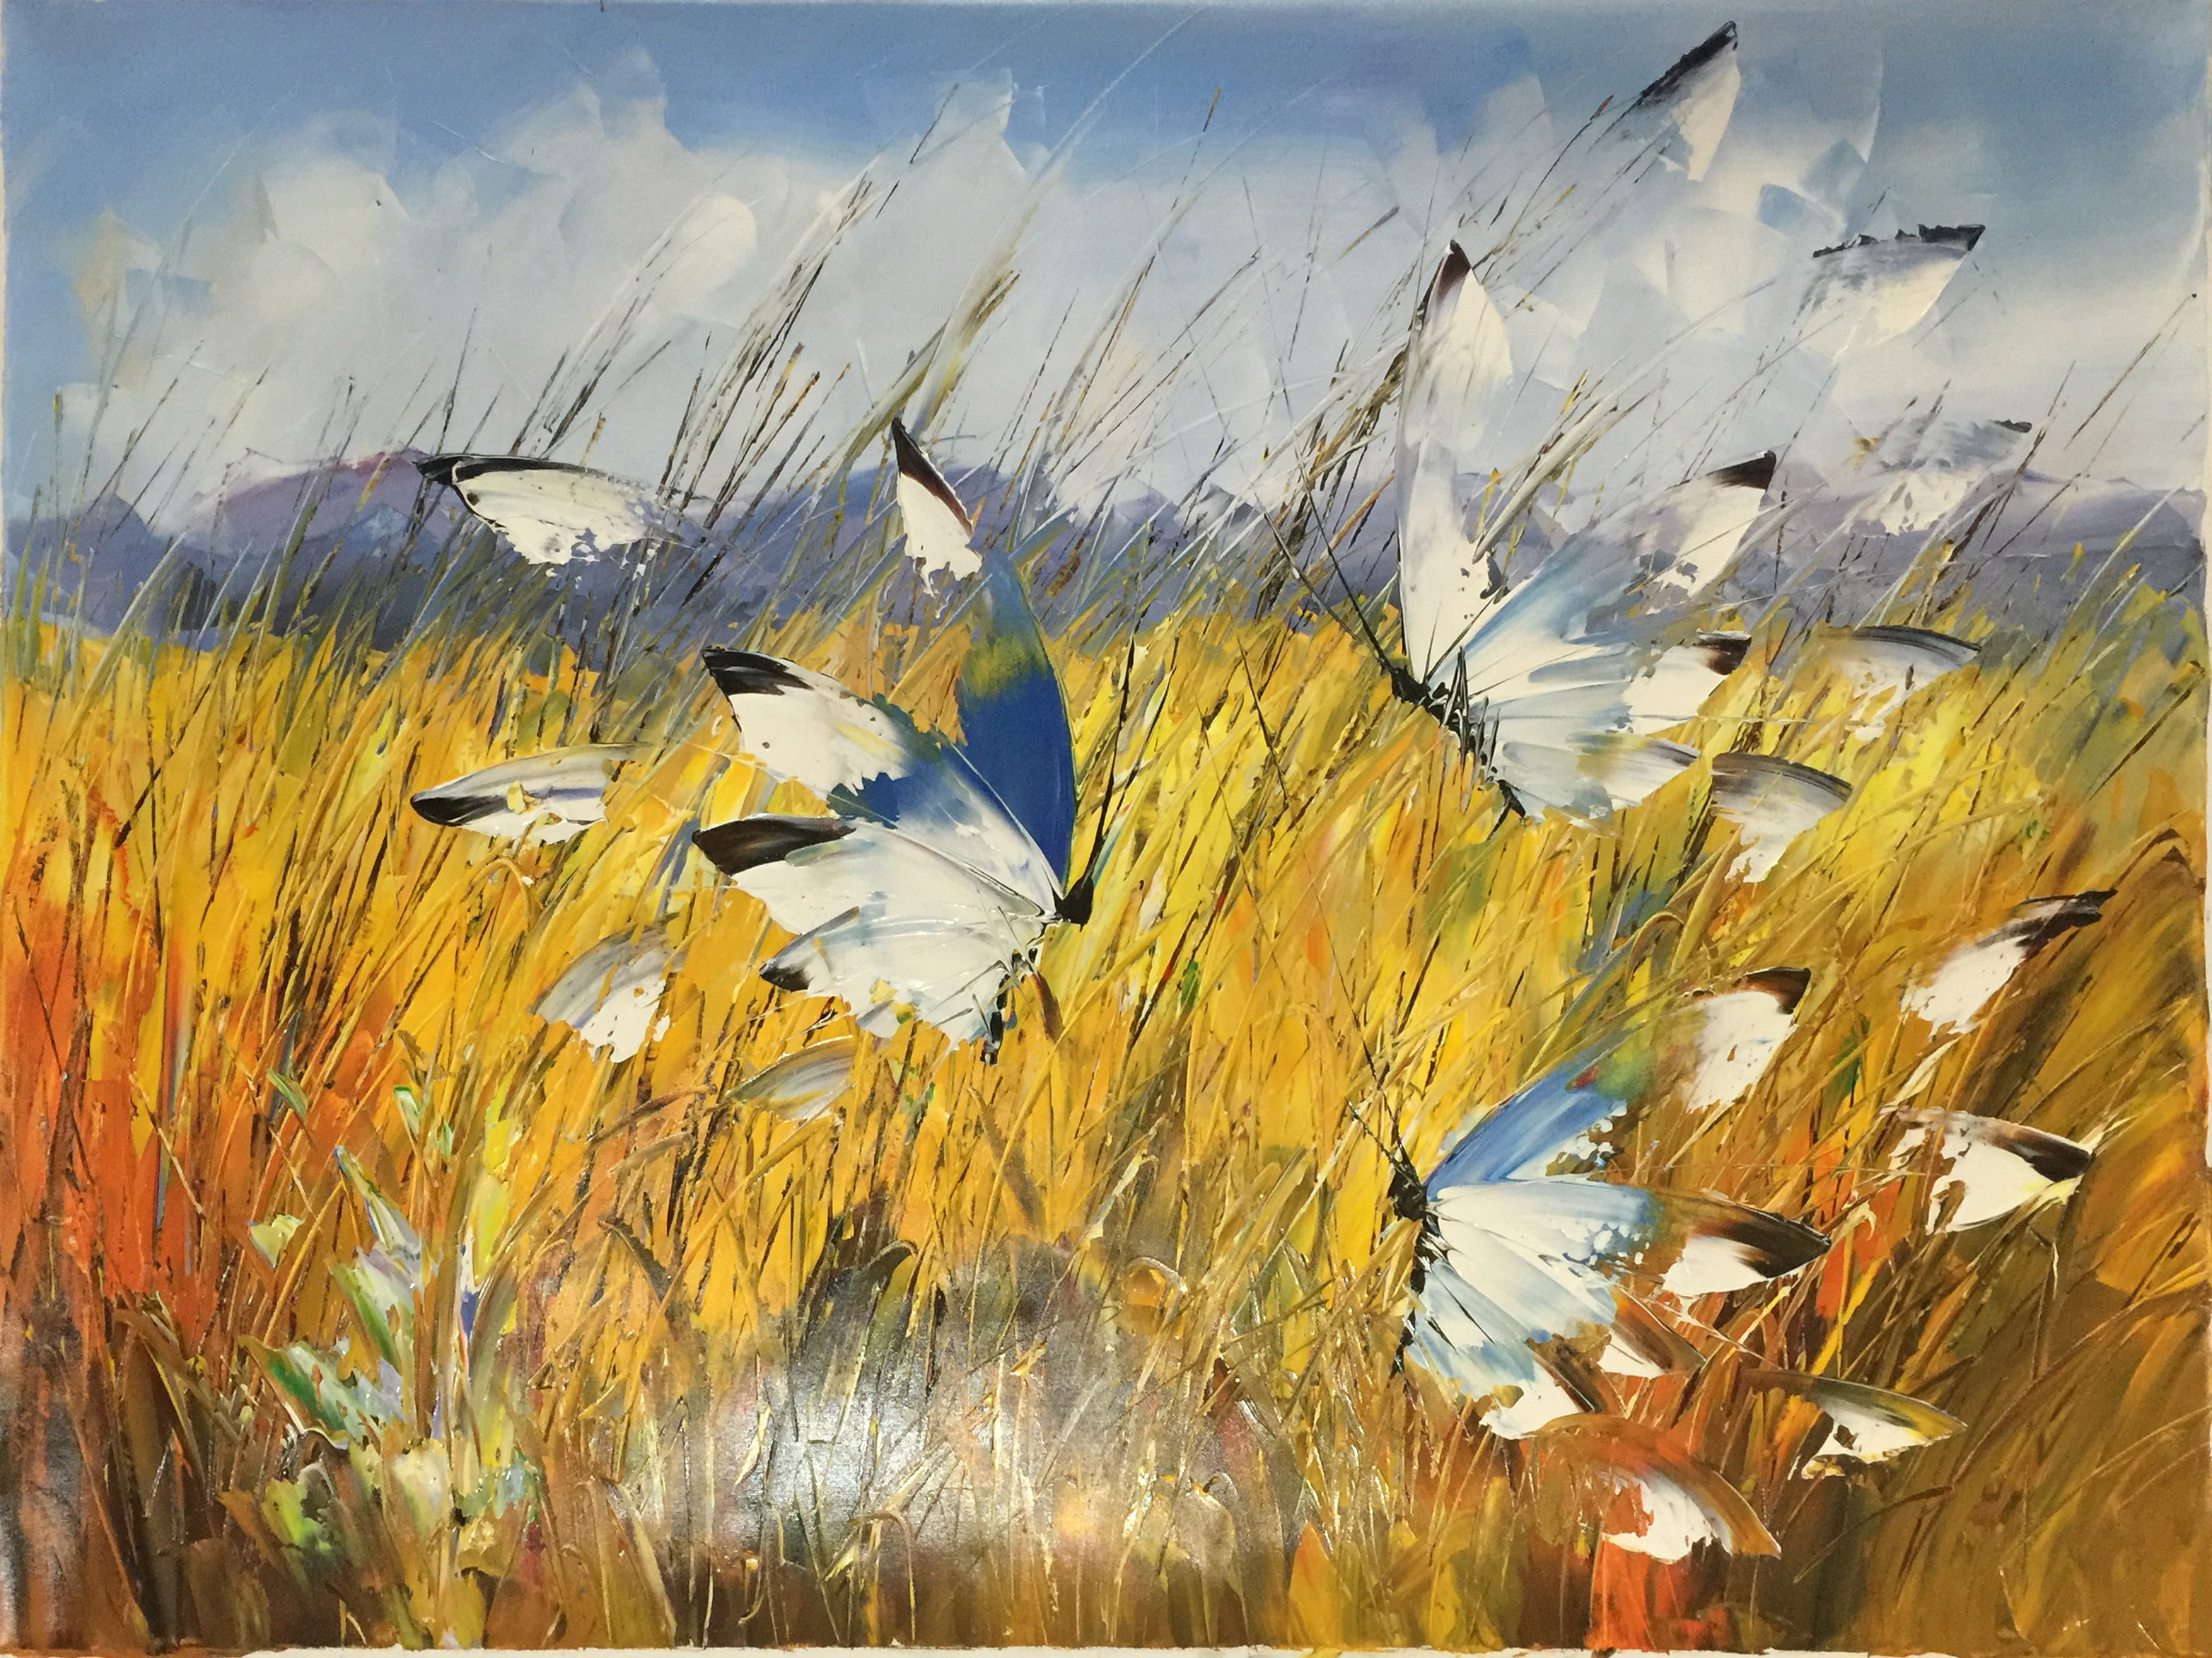 Butterflies in the field